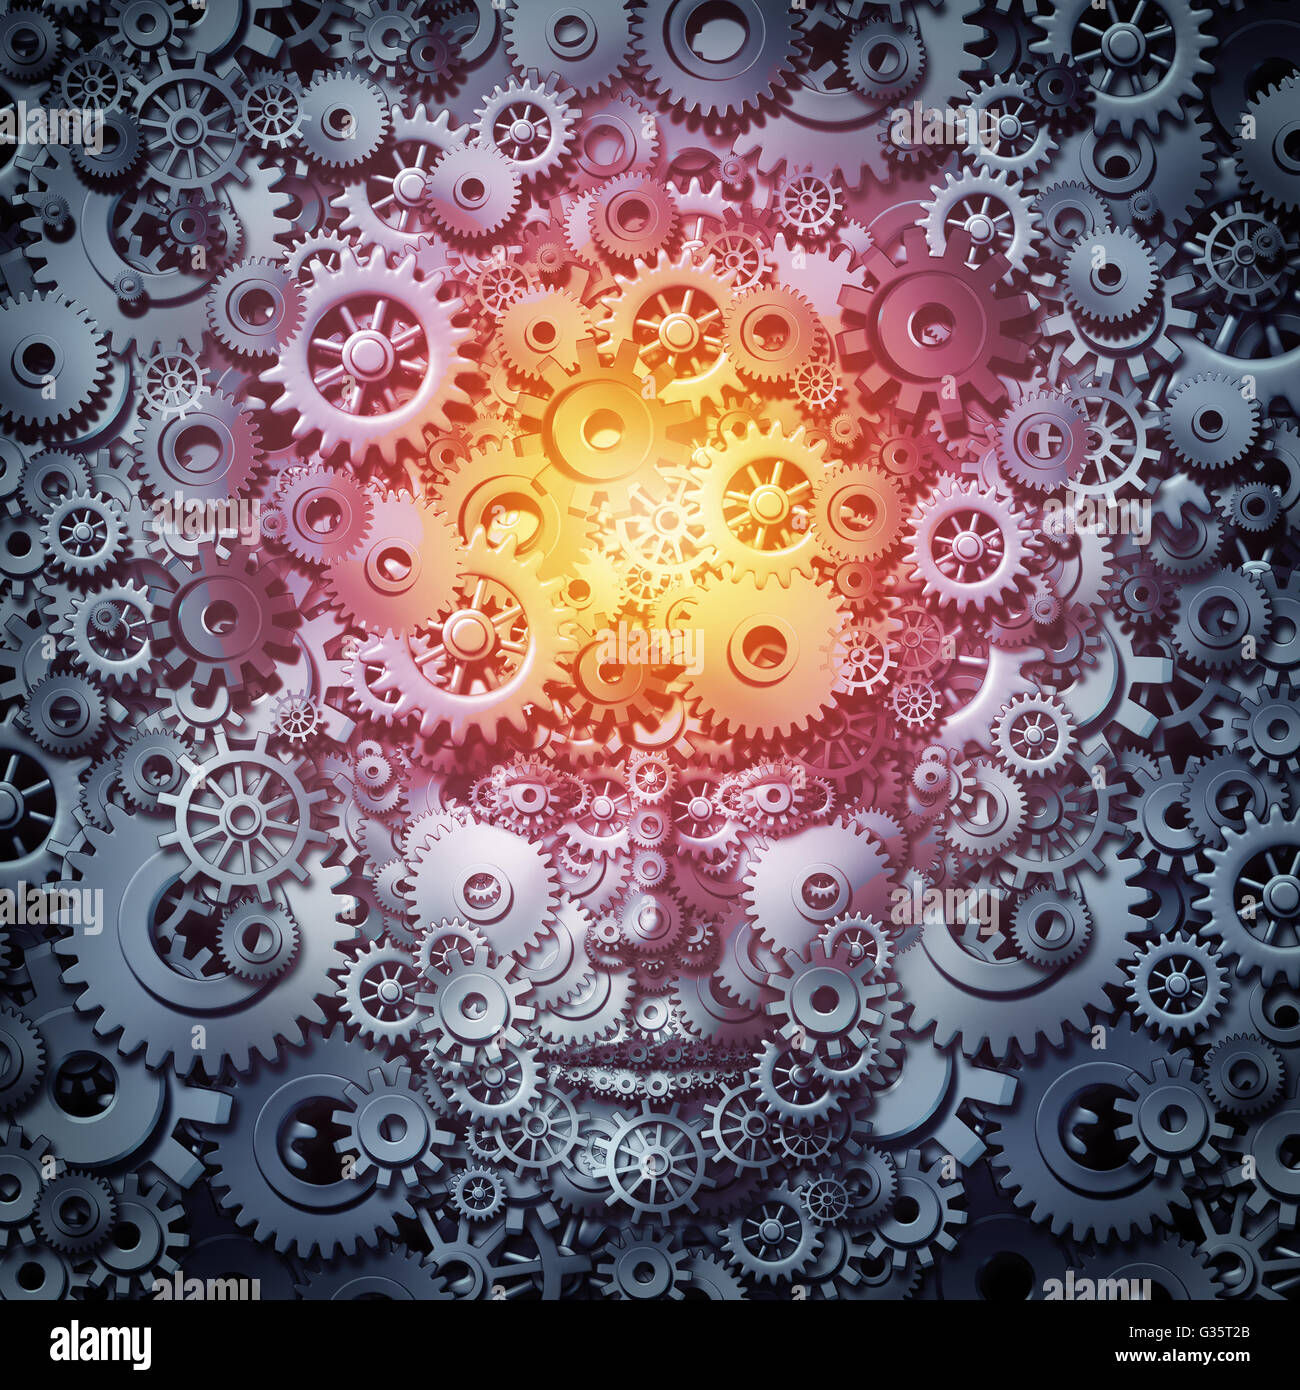 Human resource intelligence business concept as a mind and face machine made of gears and cogs as a technology or - Stock Image